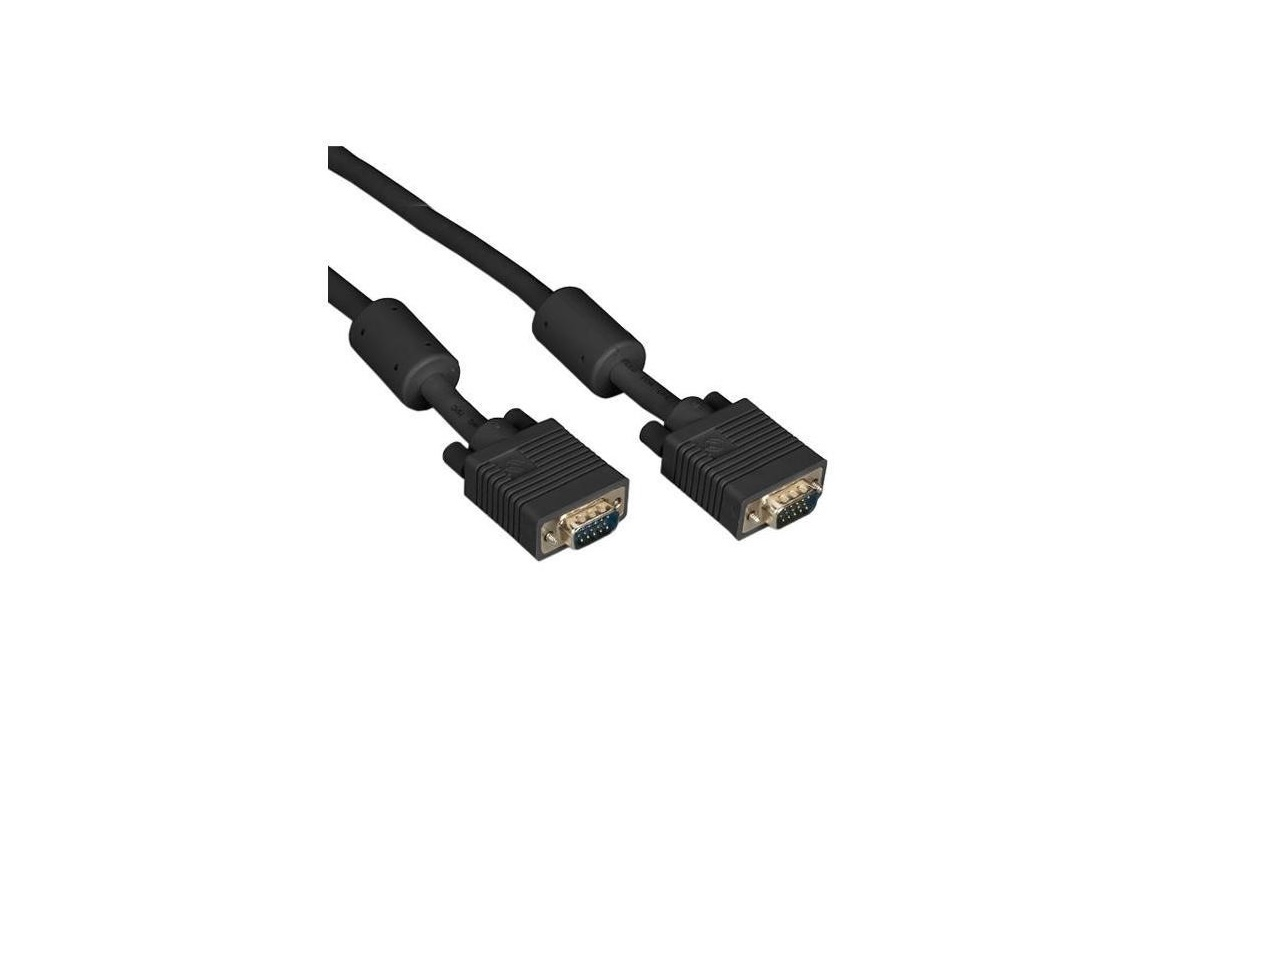 Black Box Vga Video Cable With Ferrite Core 100ft EVNPS06B-0100mm EVNPS06B-0100mm